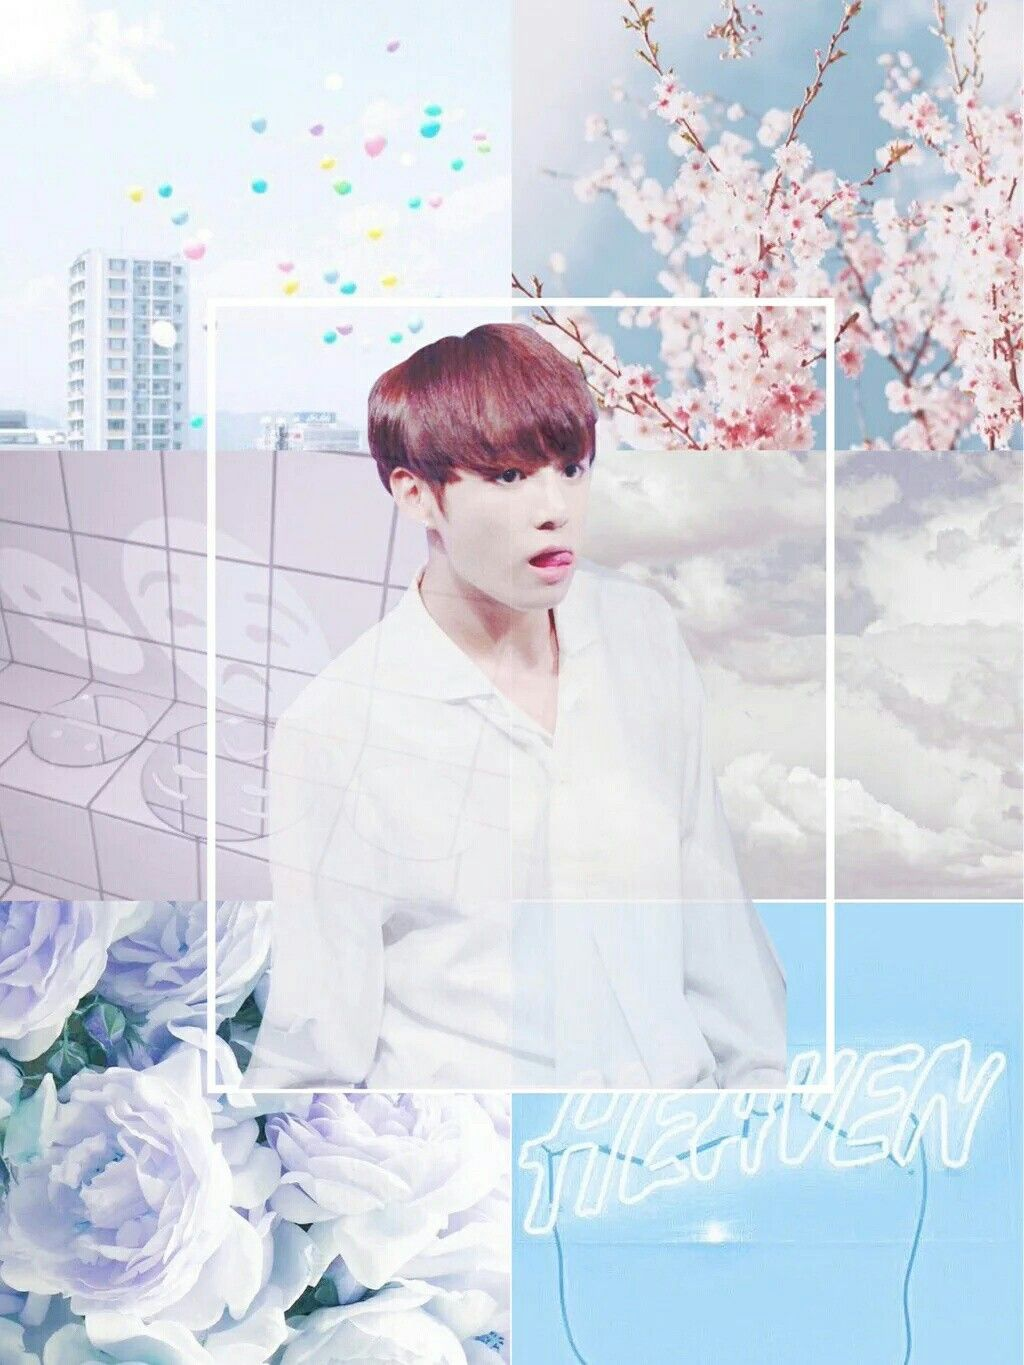 Bts Jungkook Wallpaper Aesthetic Bts Pinterest Bts